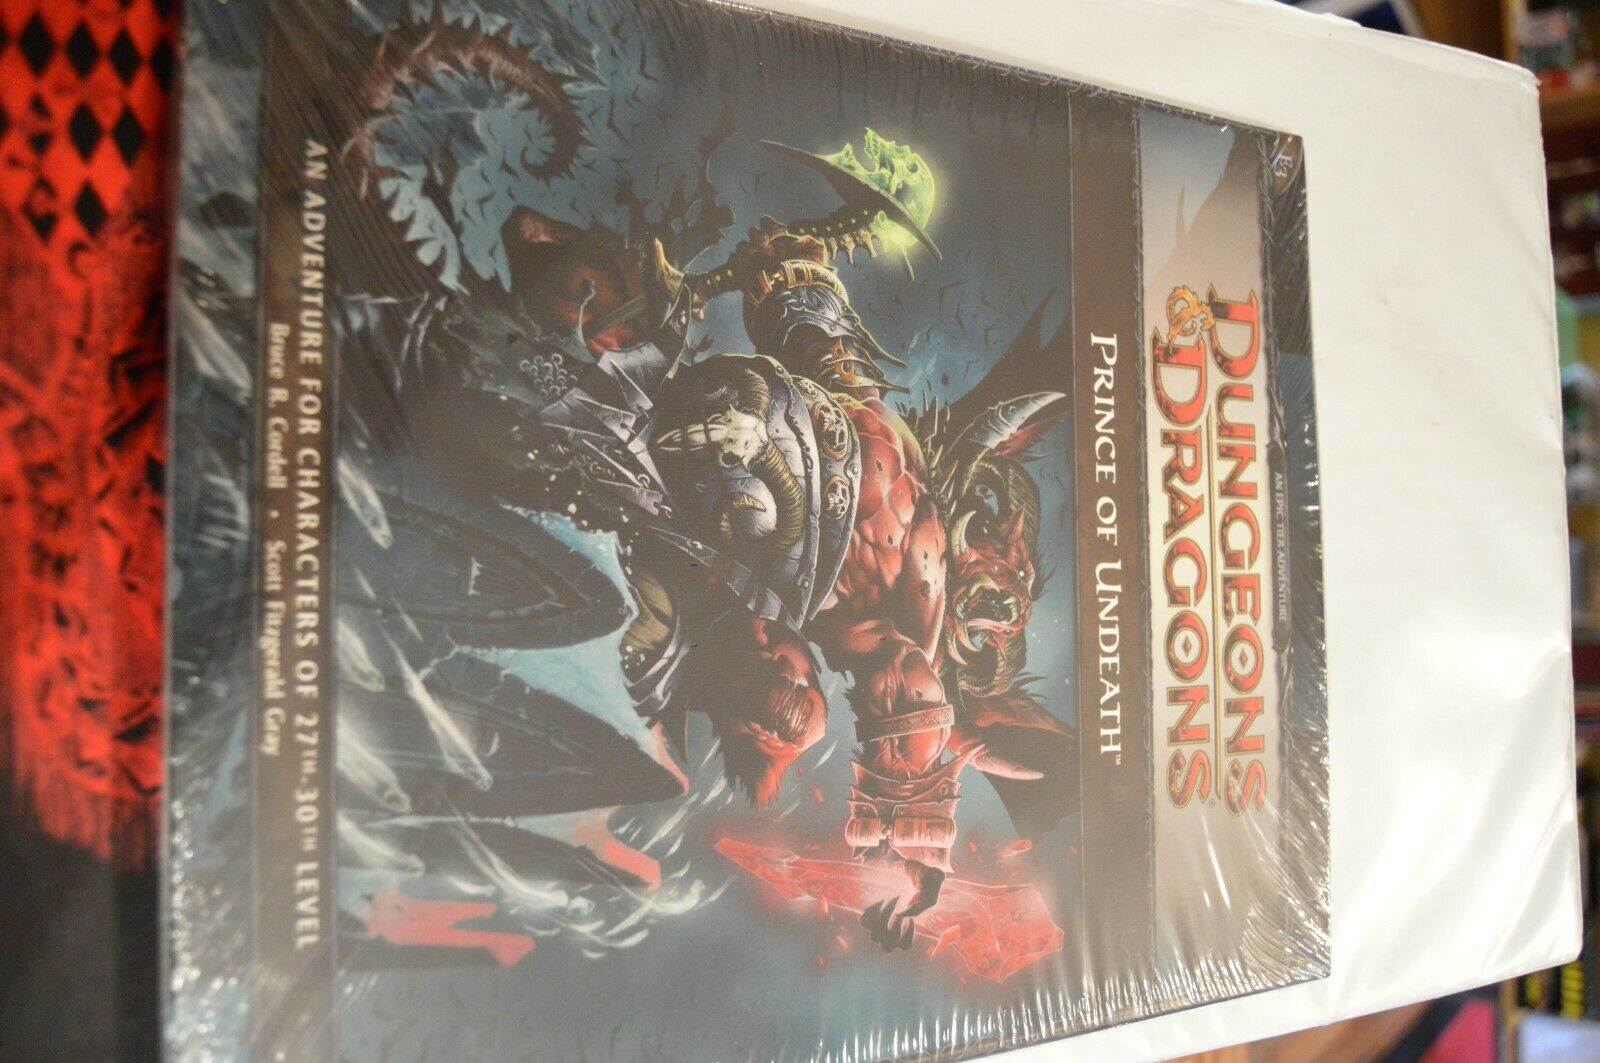 D&D Prince of uNDEATH cAMPAIGN ADVENTURE 4th ed brand NEW dungeons & dragons